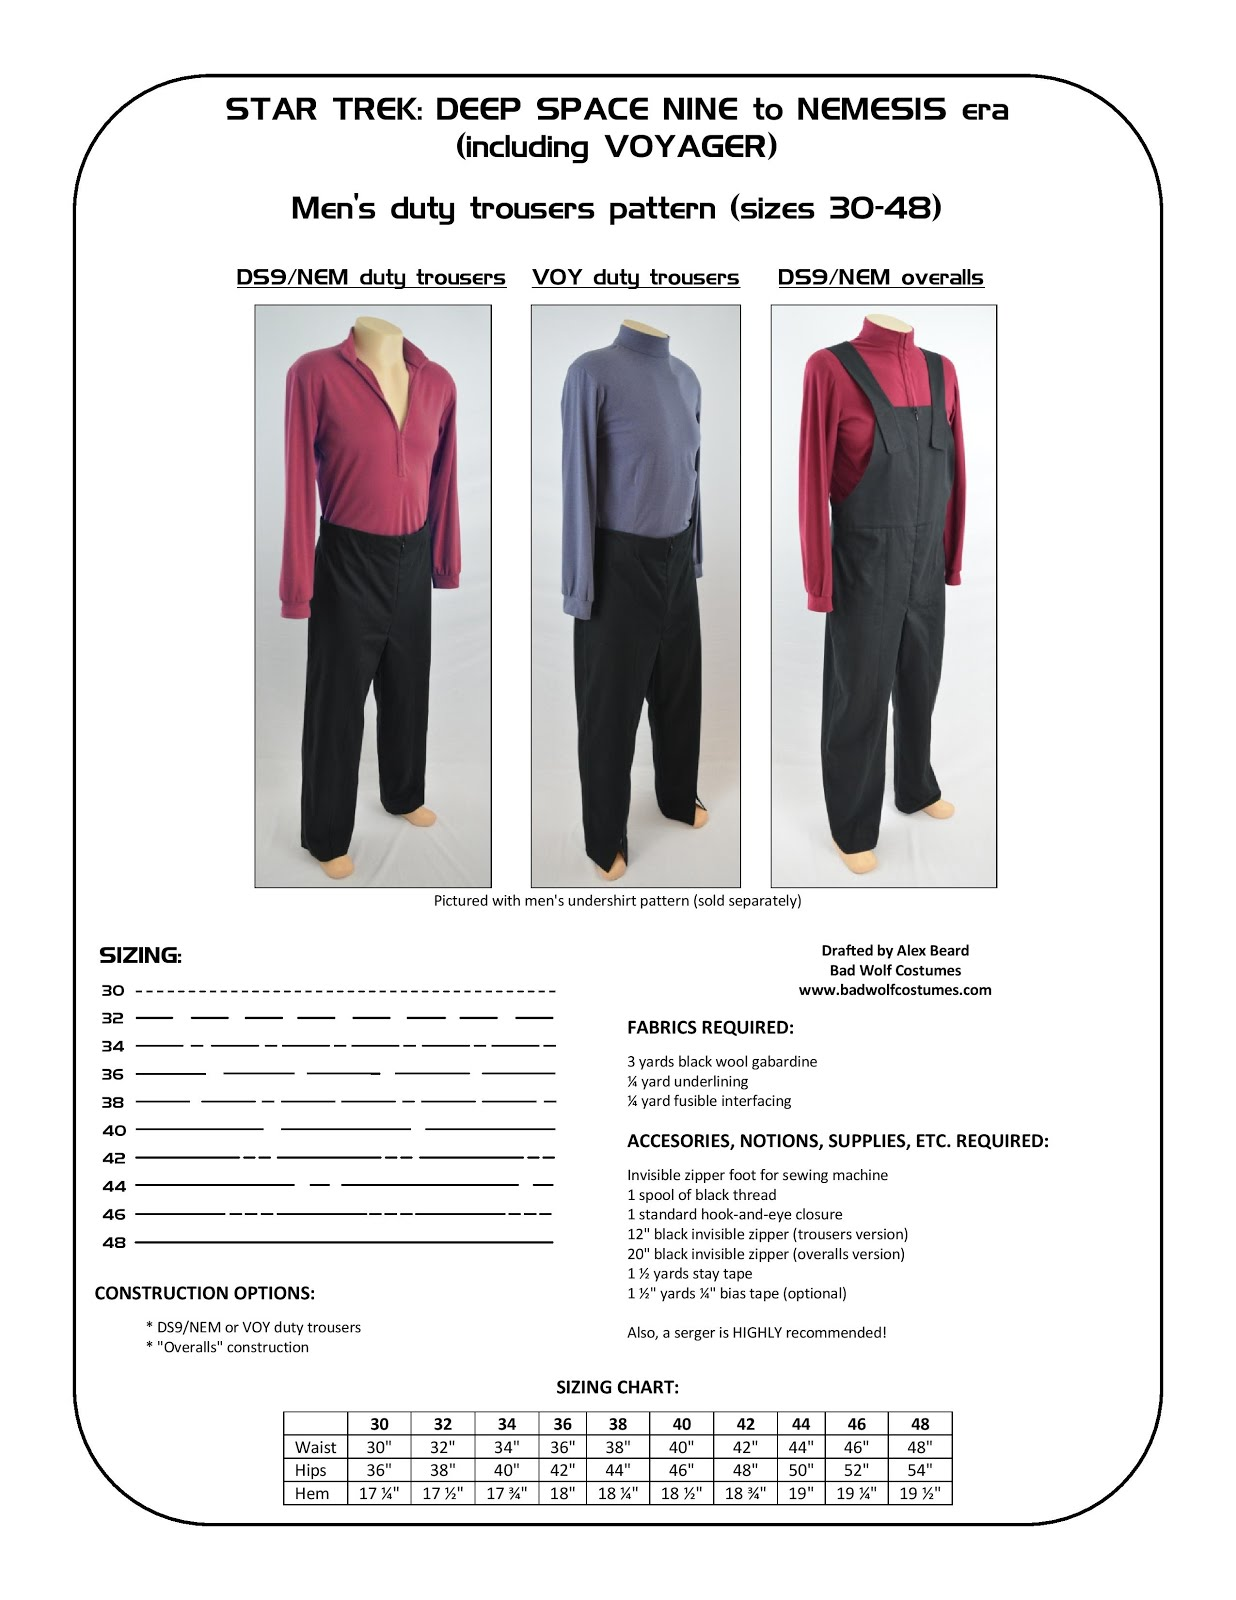 Star Trek: DS9/NEM and VOY Men's Duty Trousers Sewing Pattern